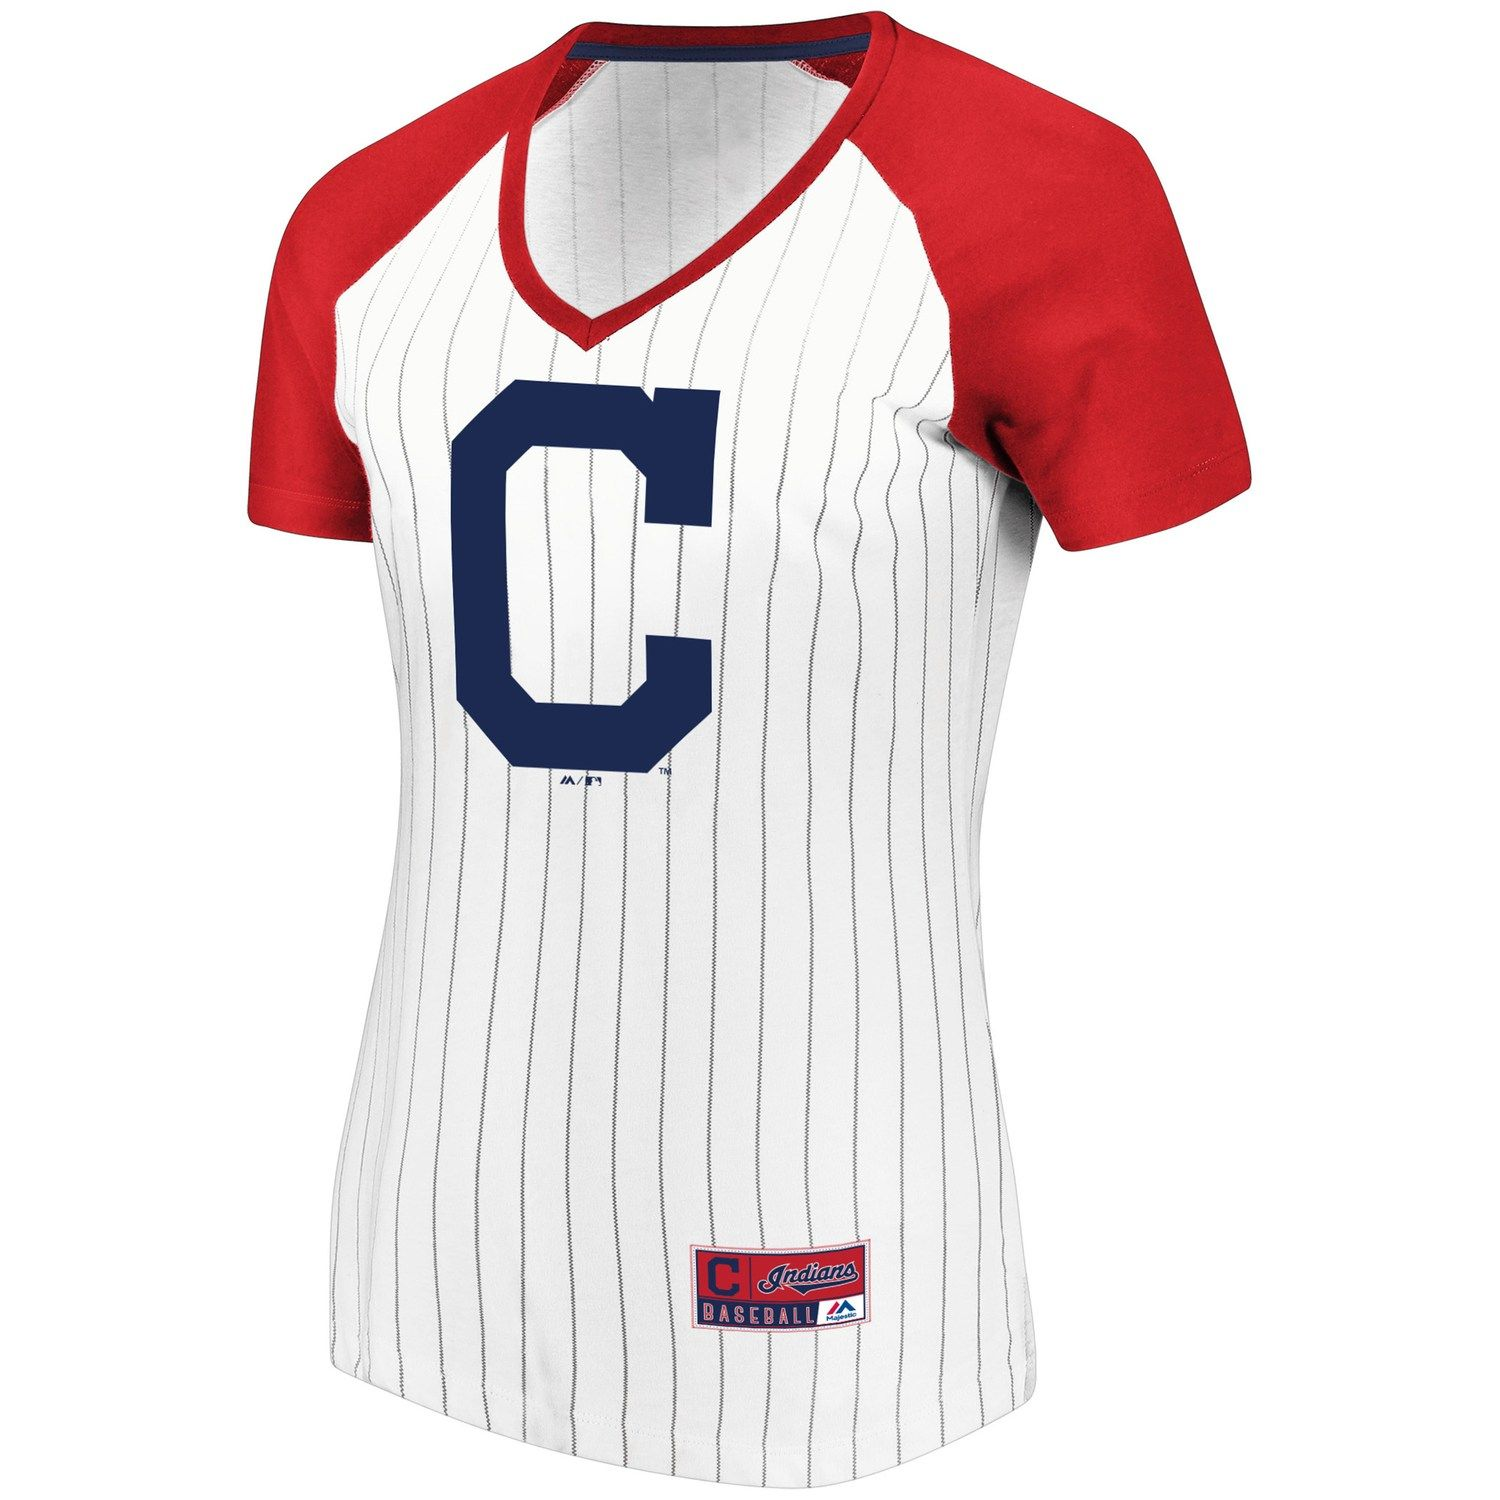 Women s Majestic Cleveland Indians Jersey Tee  bd45f03a8